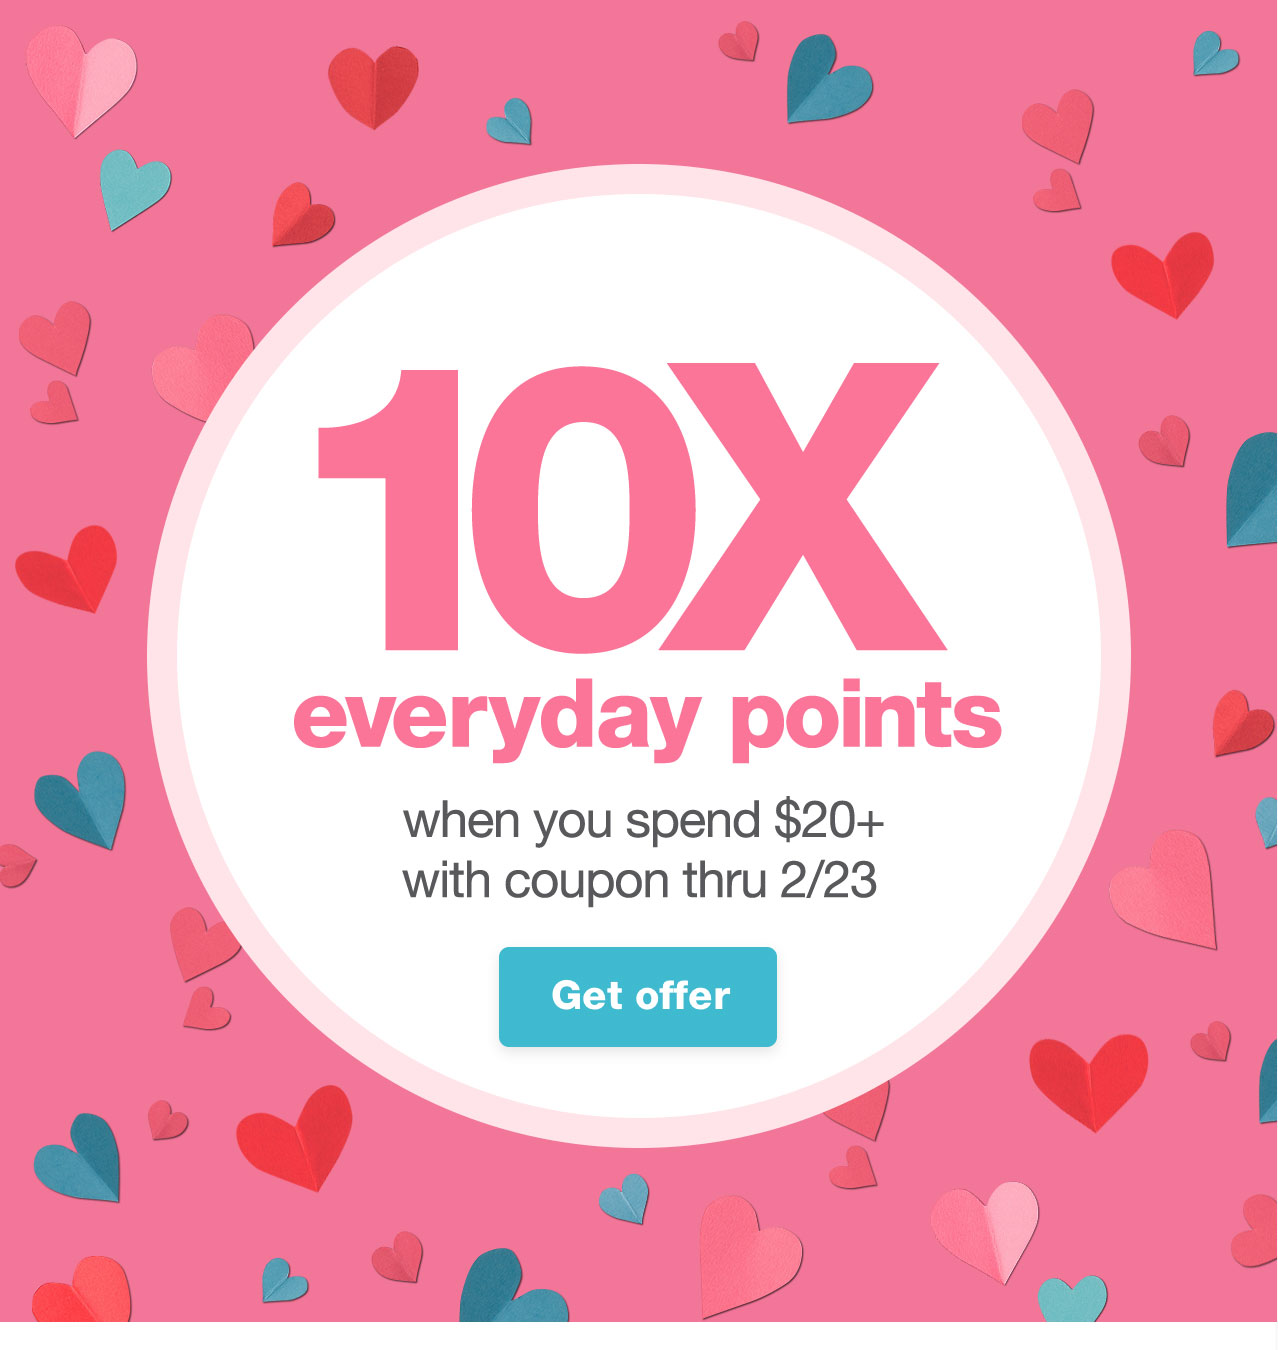 10X everyday points when you spend $20+ with coupon, thru 2/23. Get offer